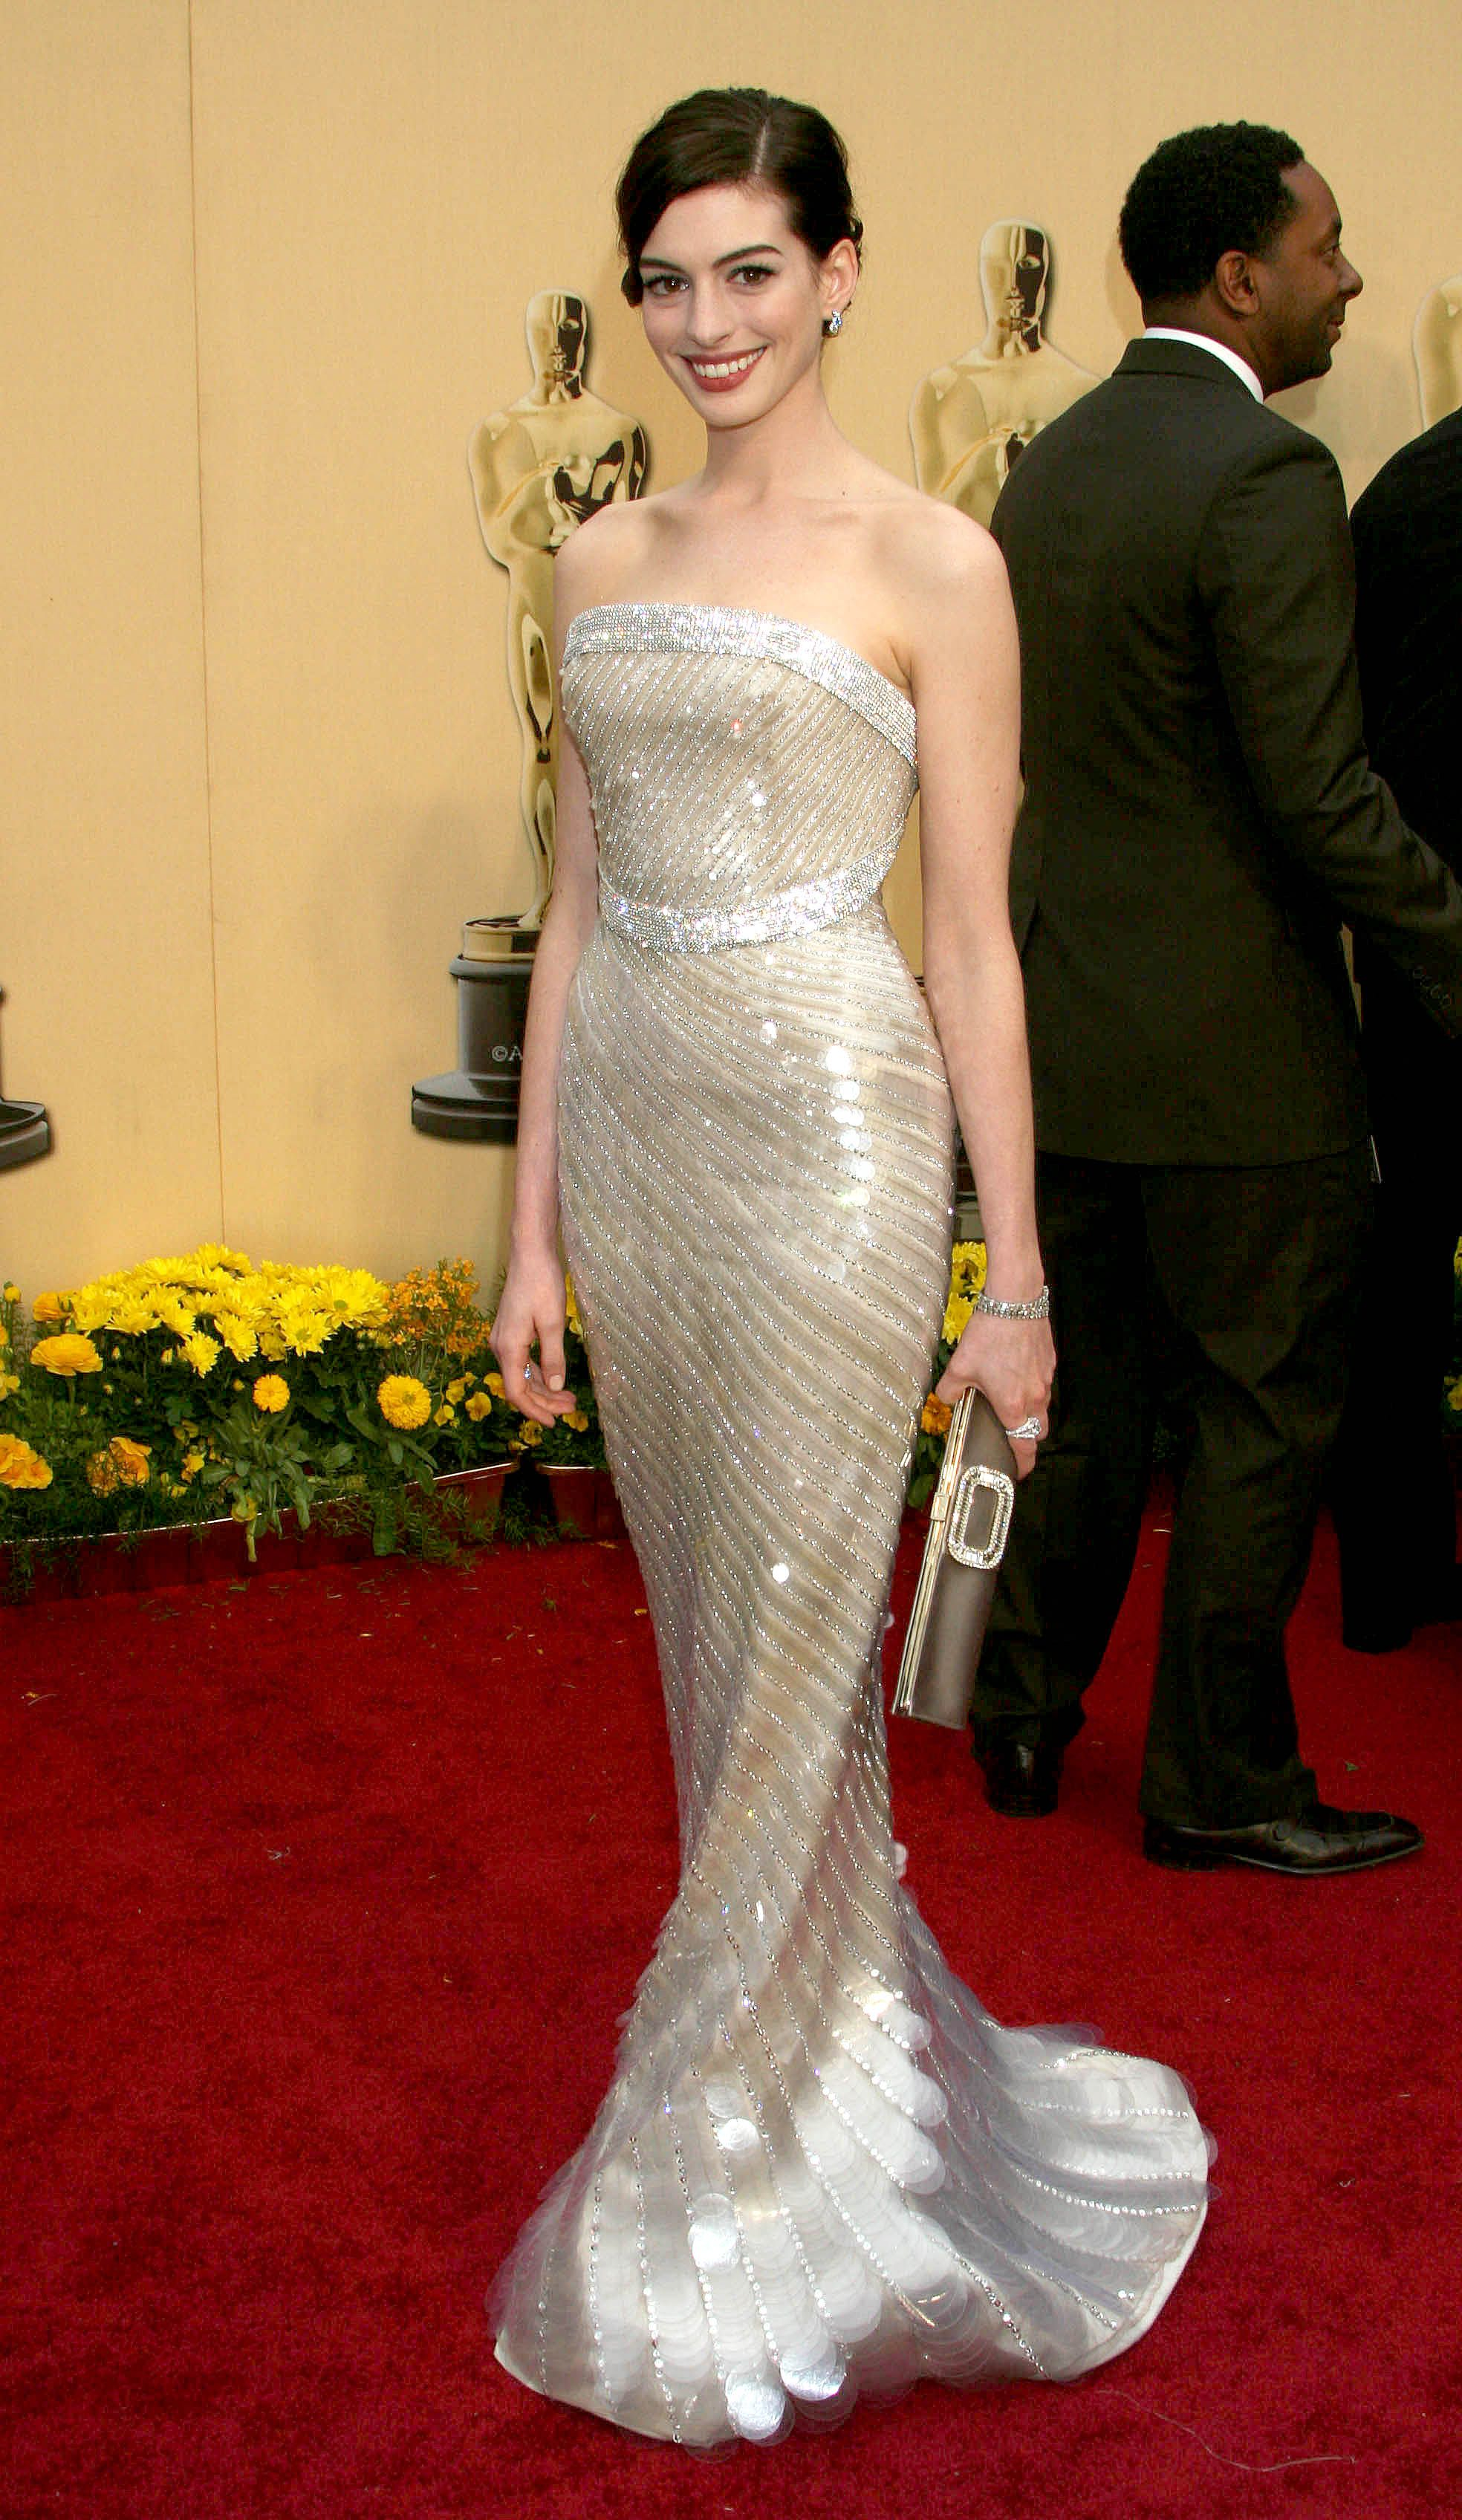 Anne Hathaway Dress | Iconic Glam Dresses | Pinterest | Anne ...